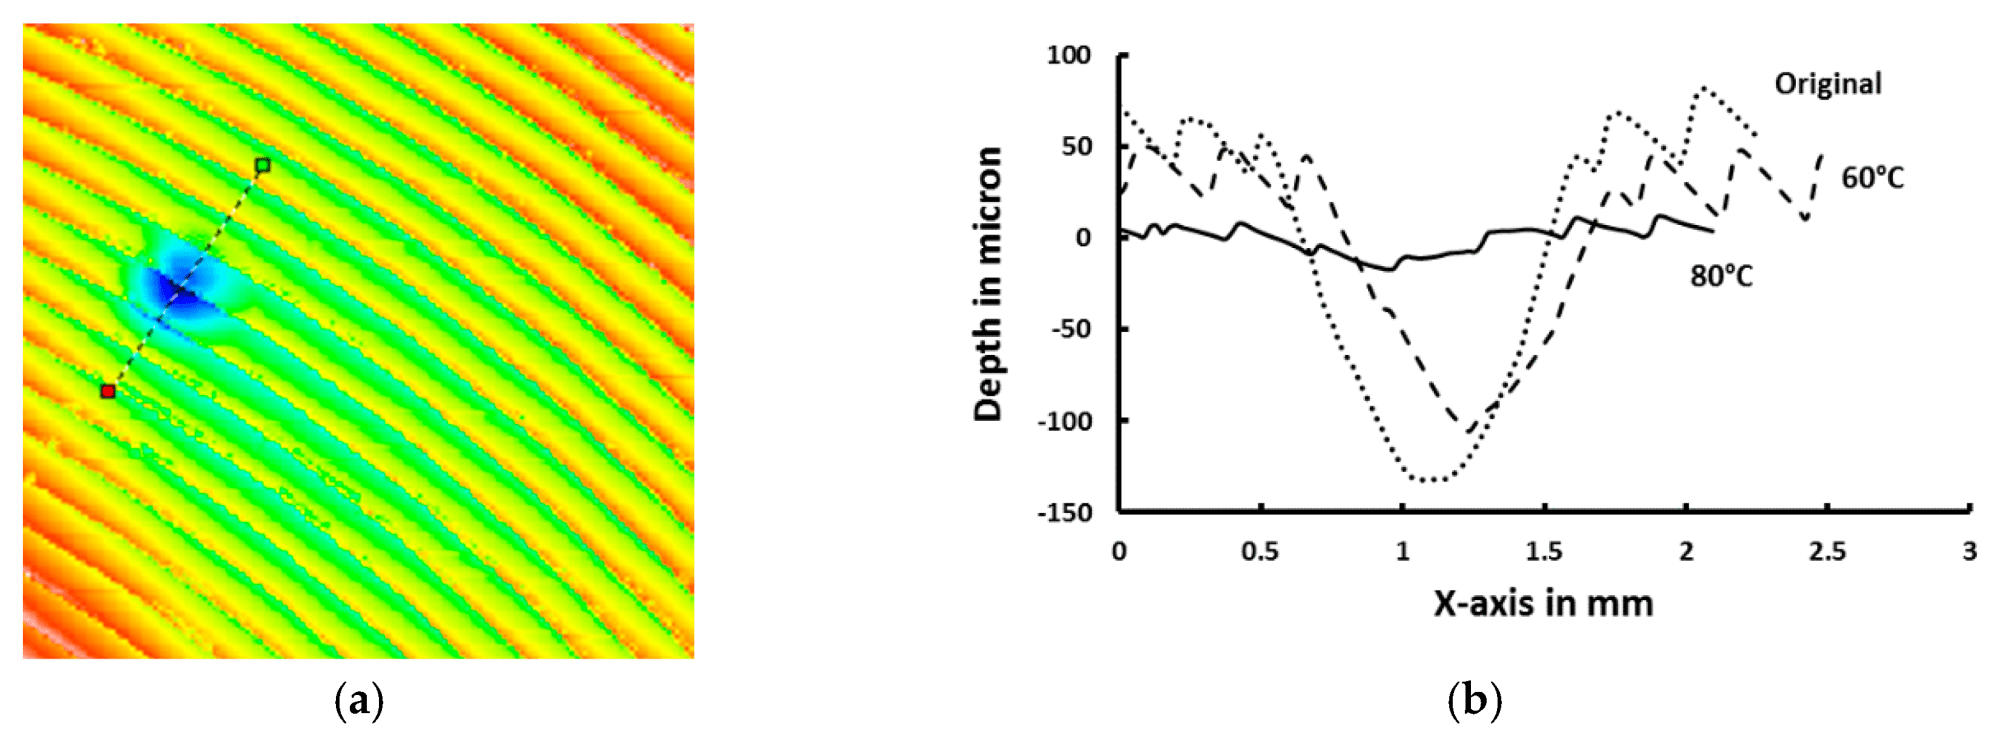 hight resolution of polymers 11 01049 g018